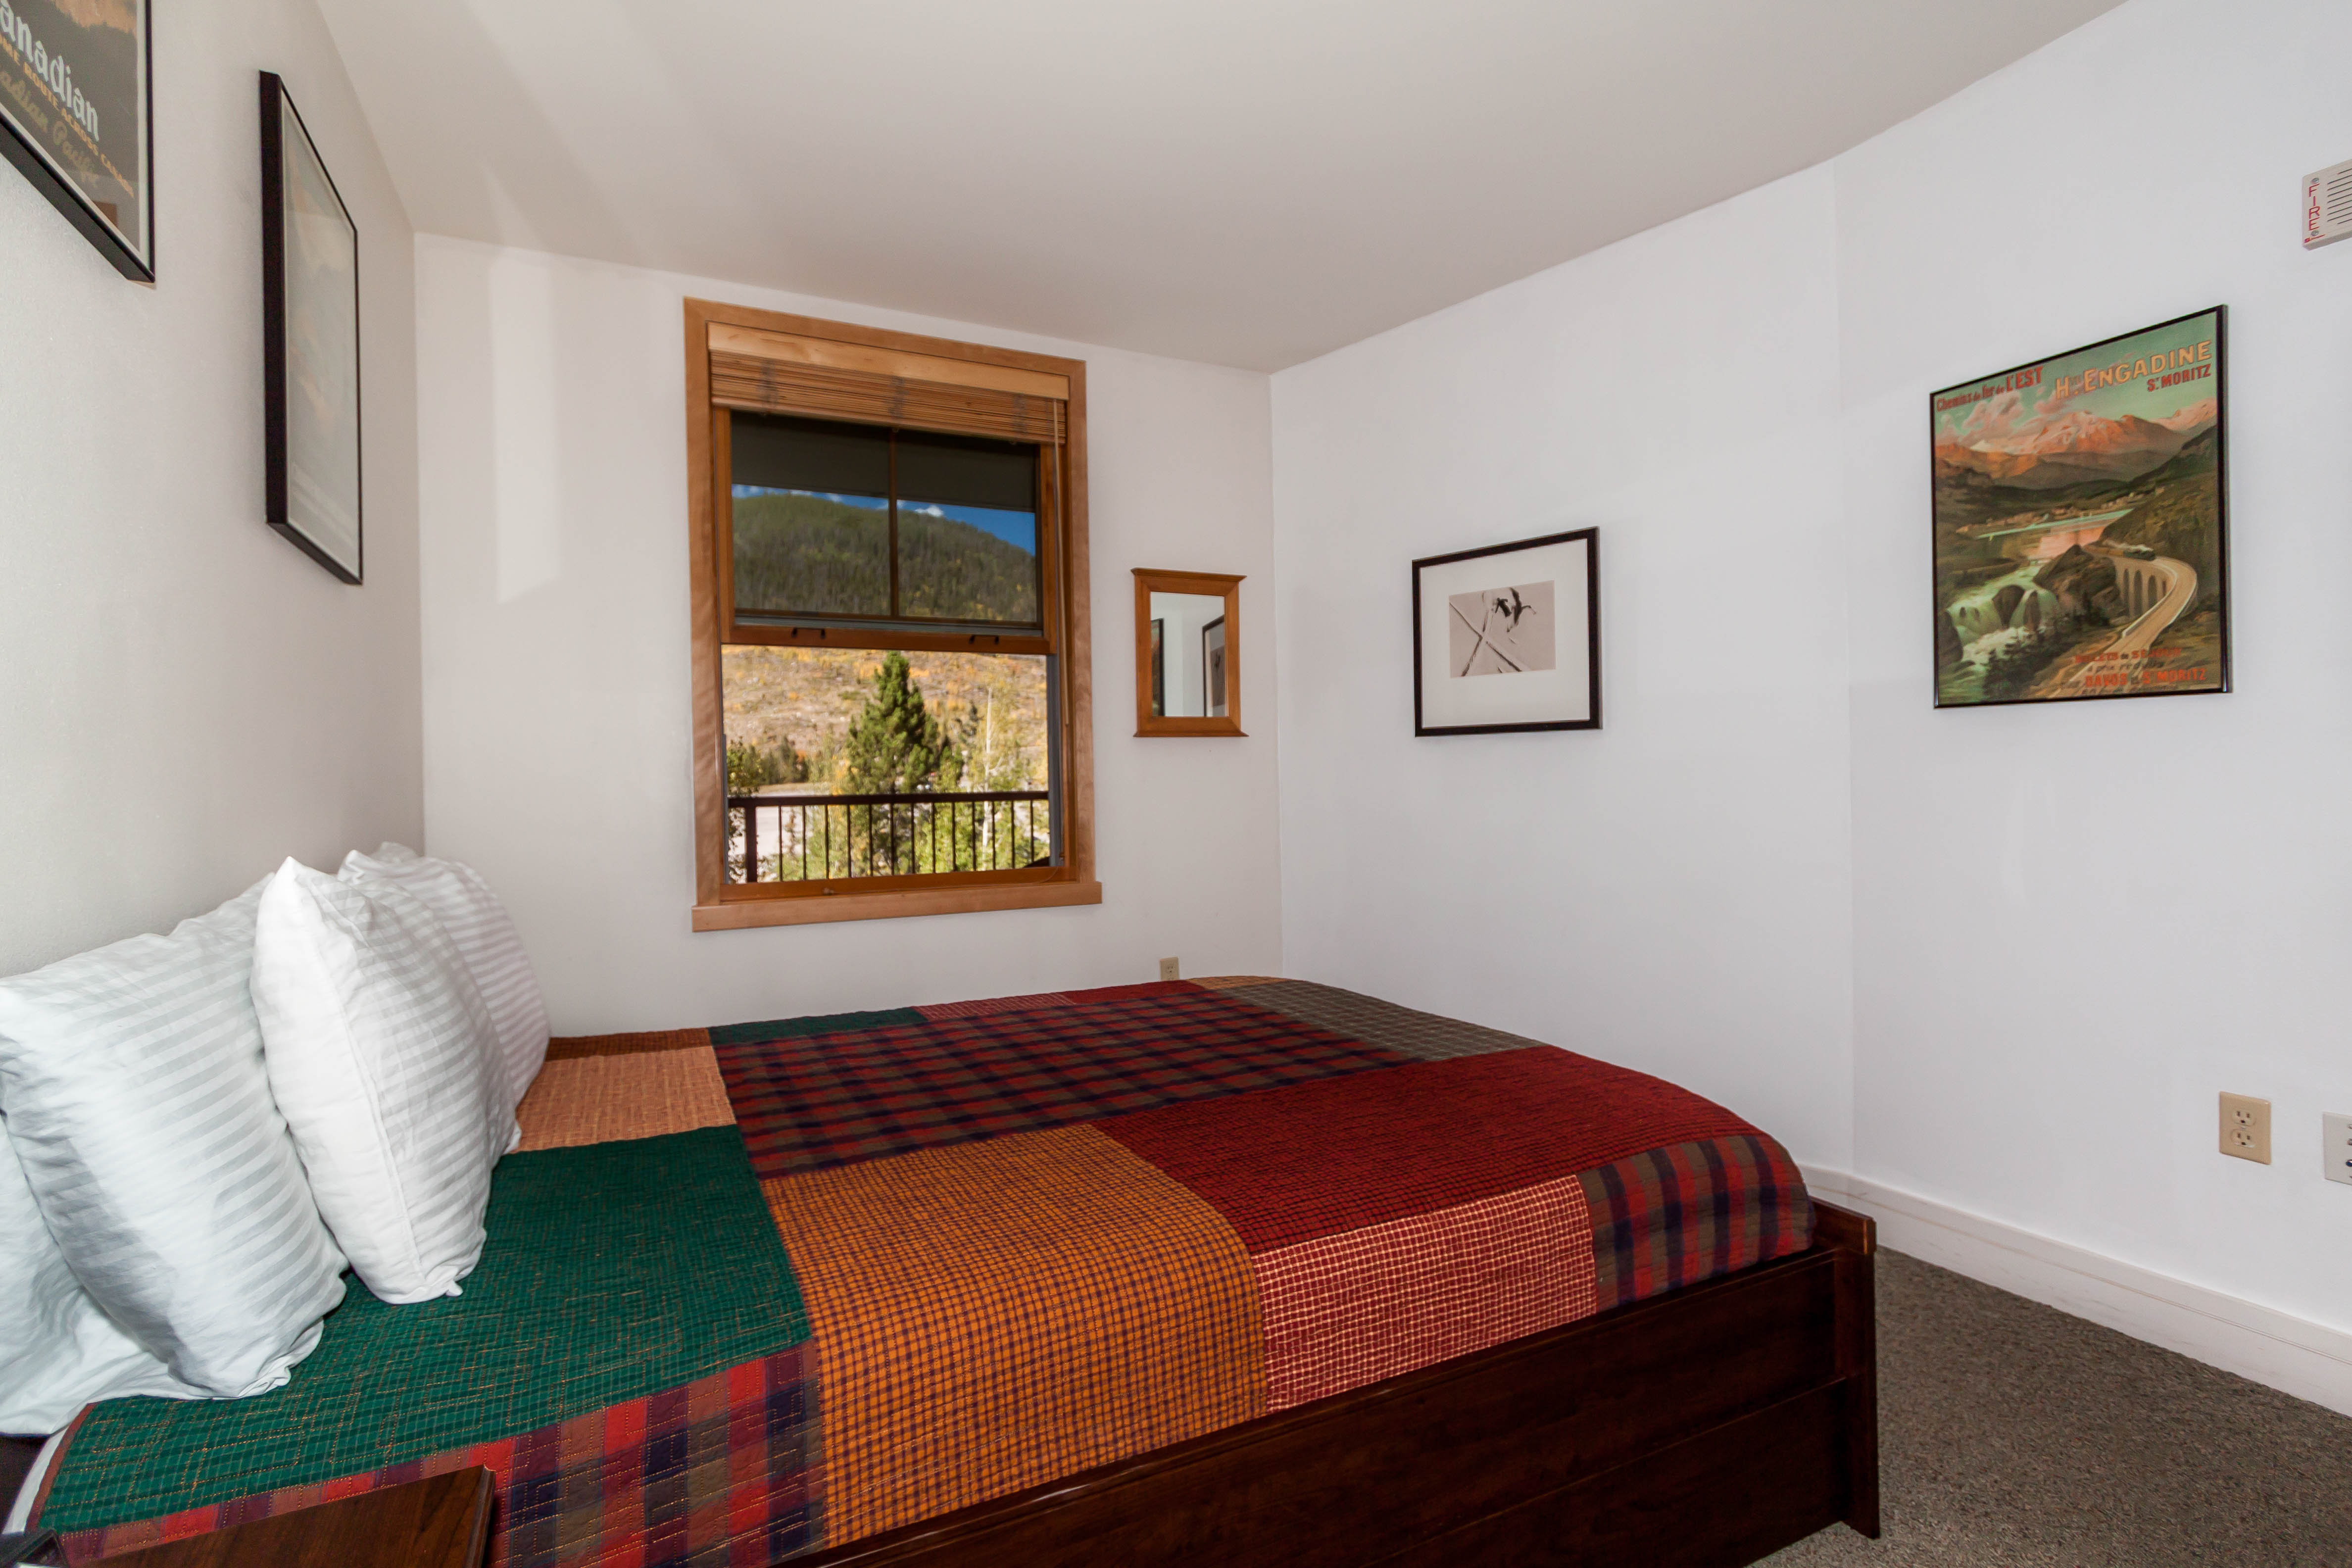 The bedroom features a queen-sized bed and offers mountain views.